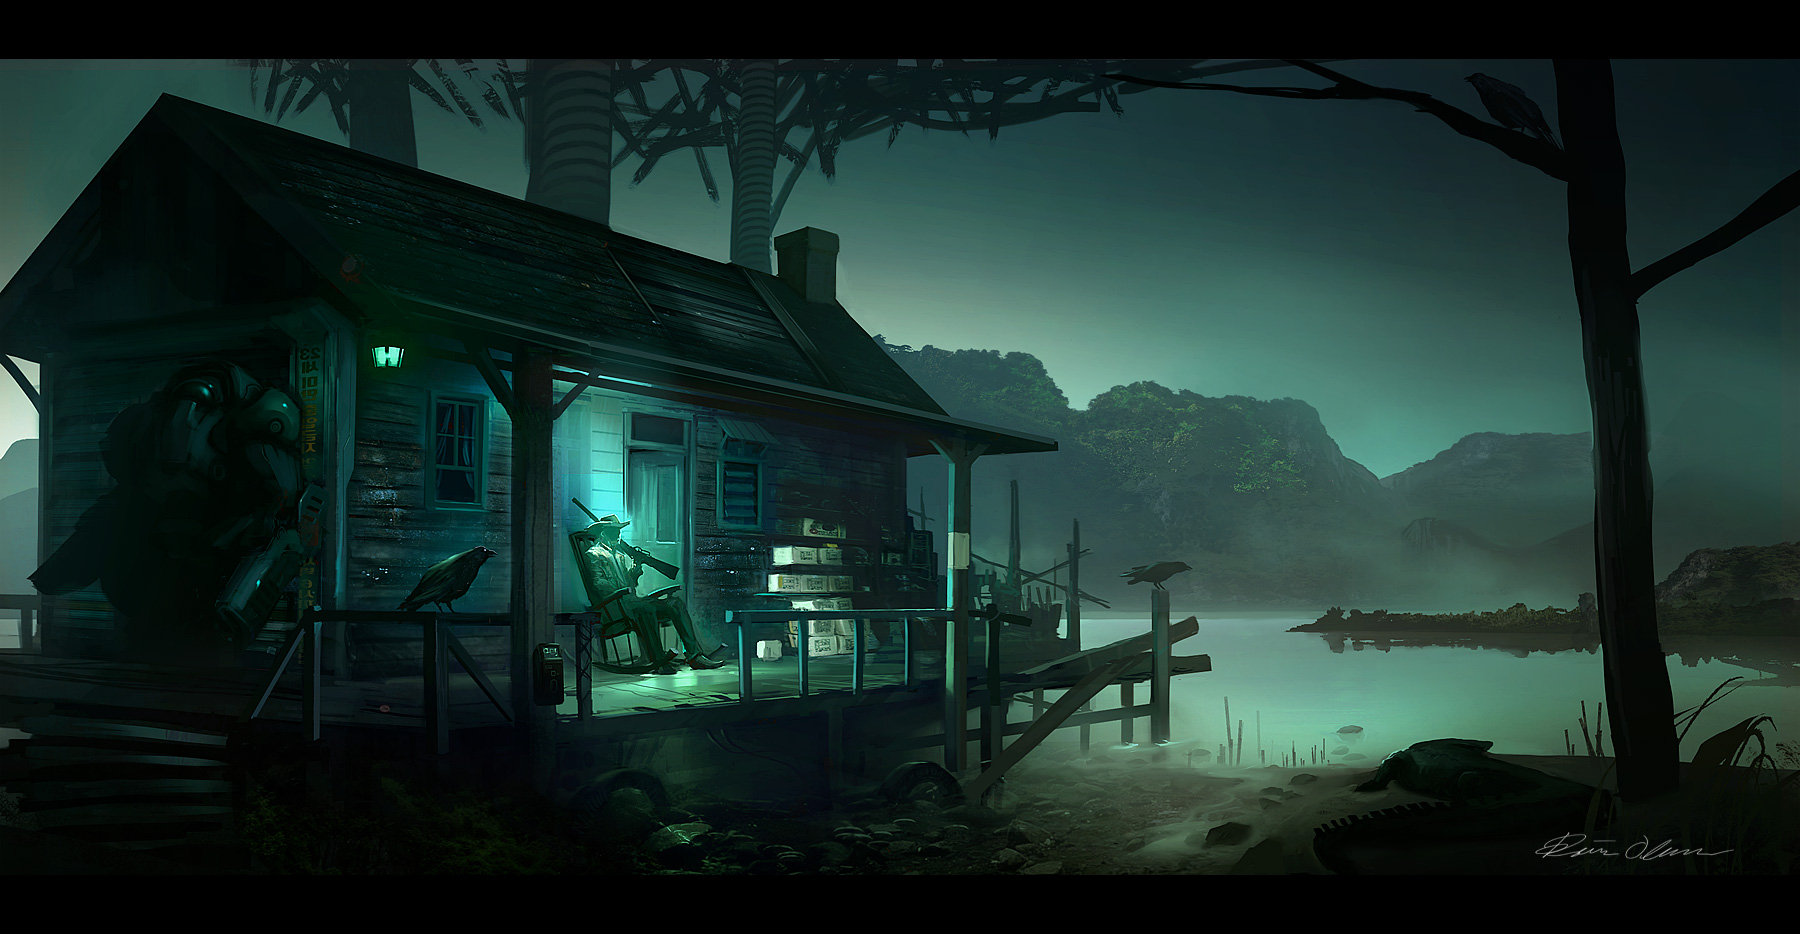 Home by eWKn